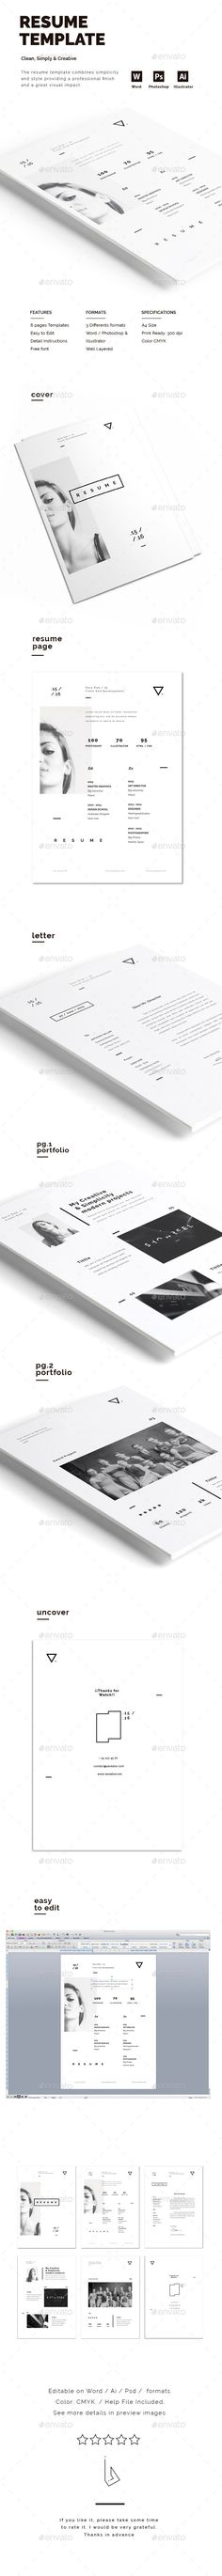 Personal Resume Template Design Design resume, Cv design and - ux design resume